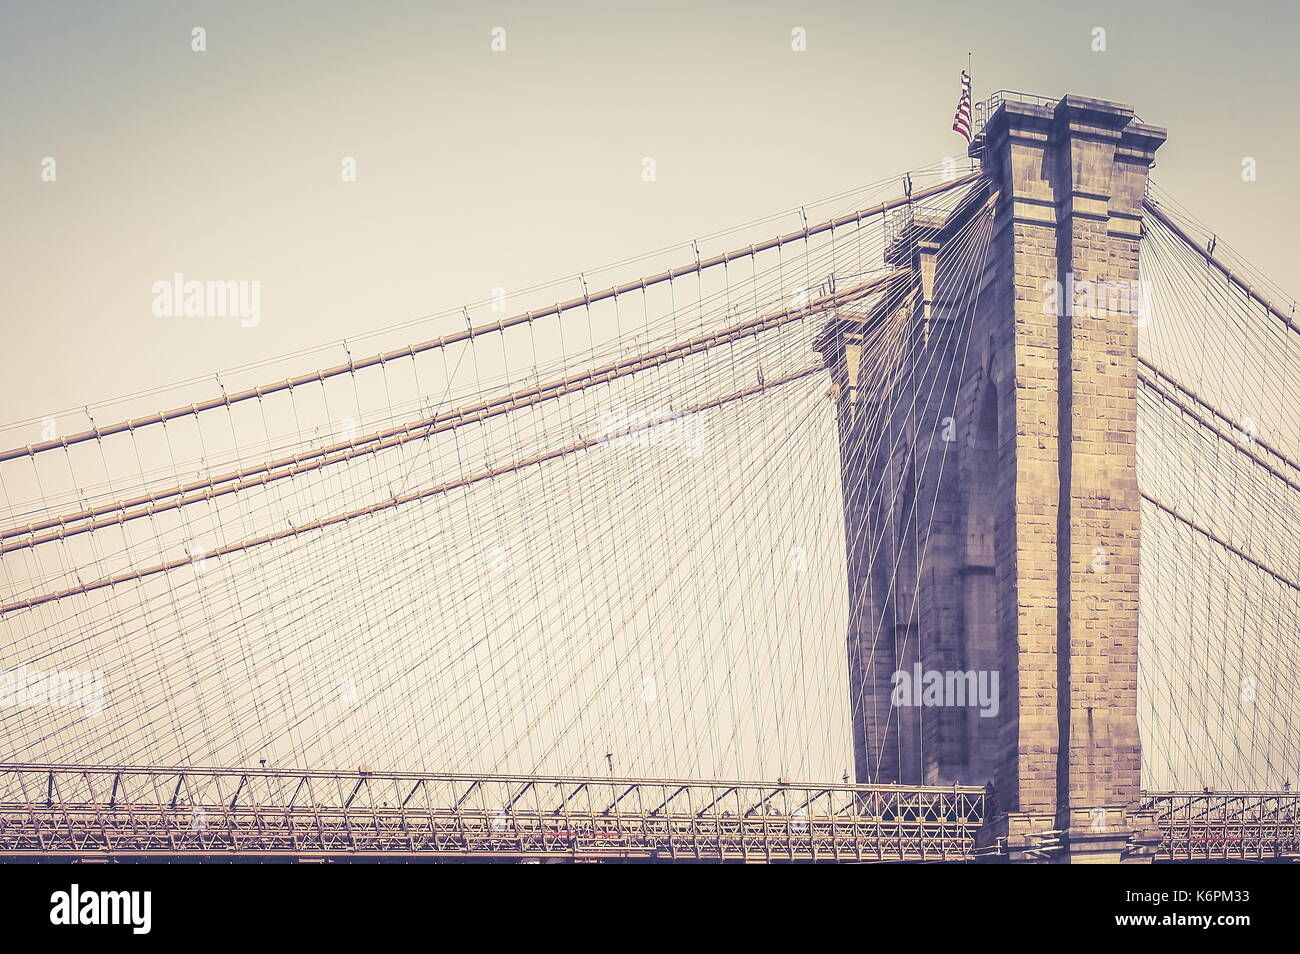 New York, USA - 28 September, 2016: Close up image of the Brooklyn Bridge which joins the Manhattan and Brooklyn Boroughs of New York. - Stock Image